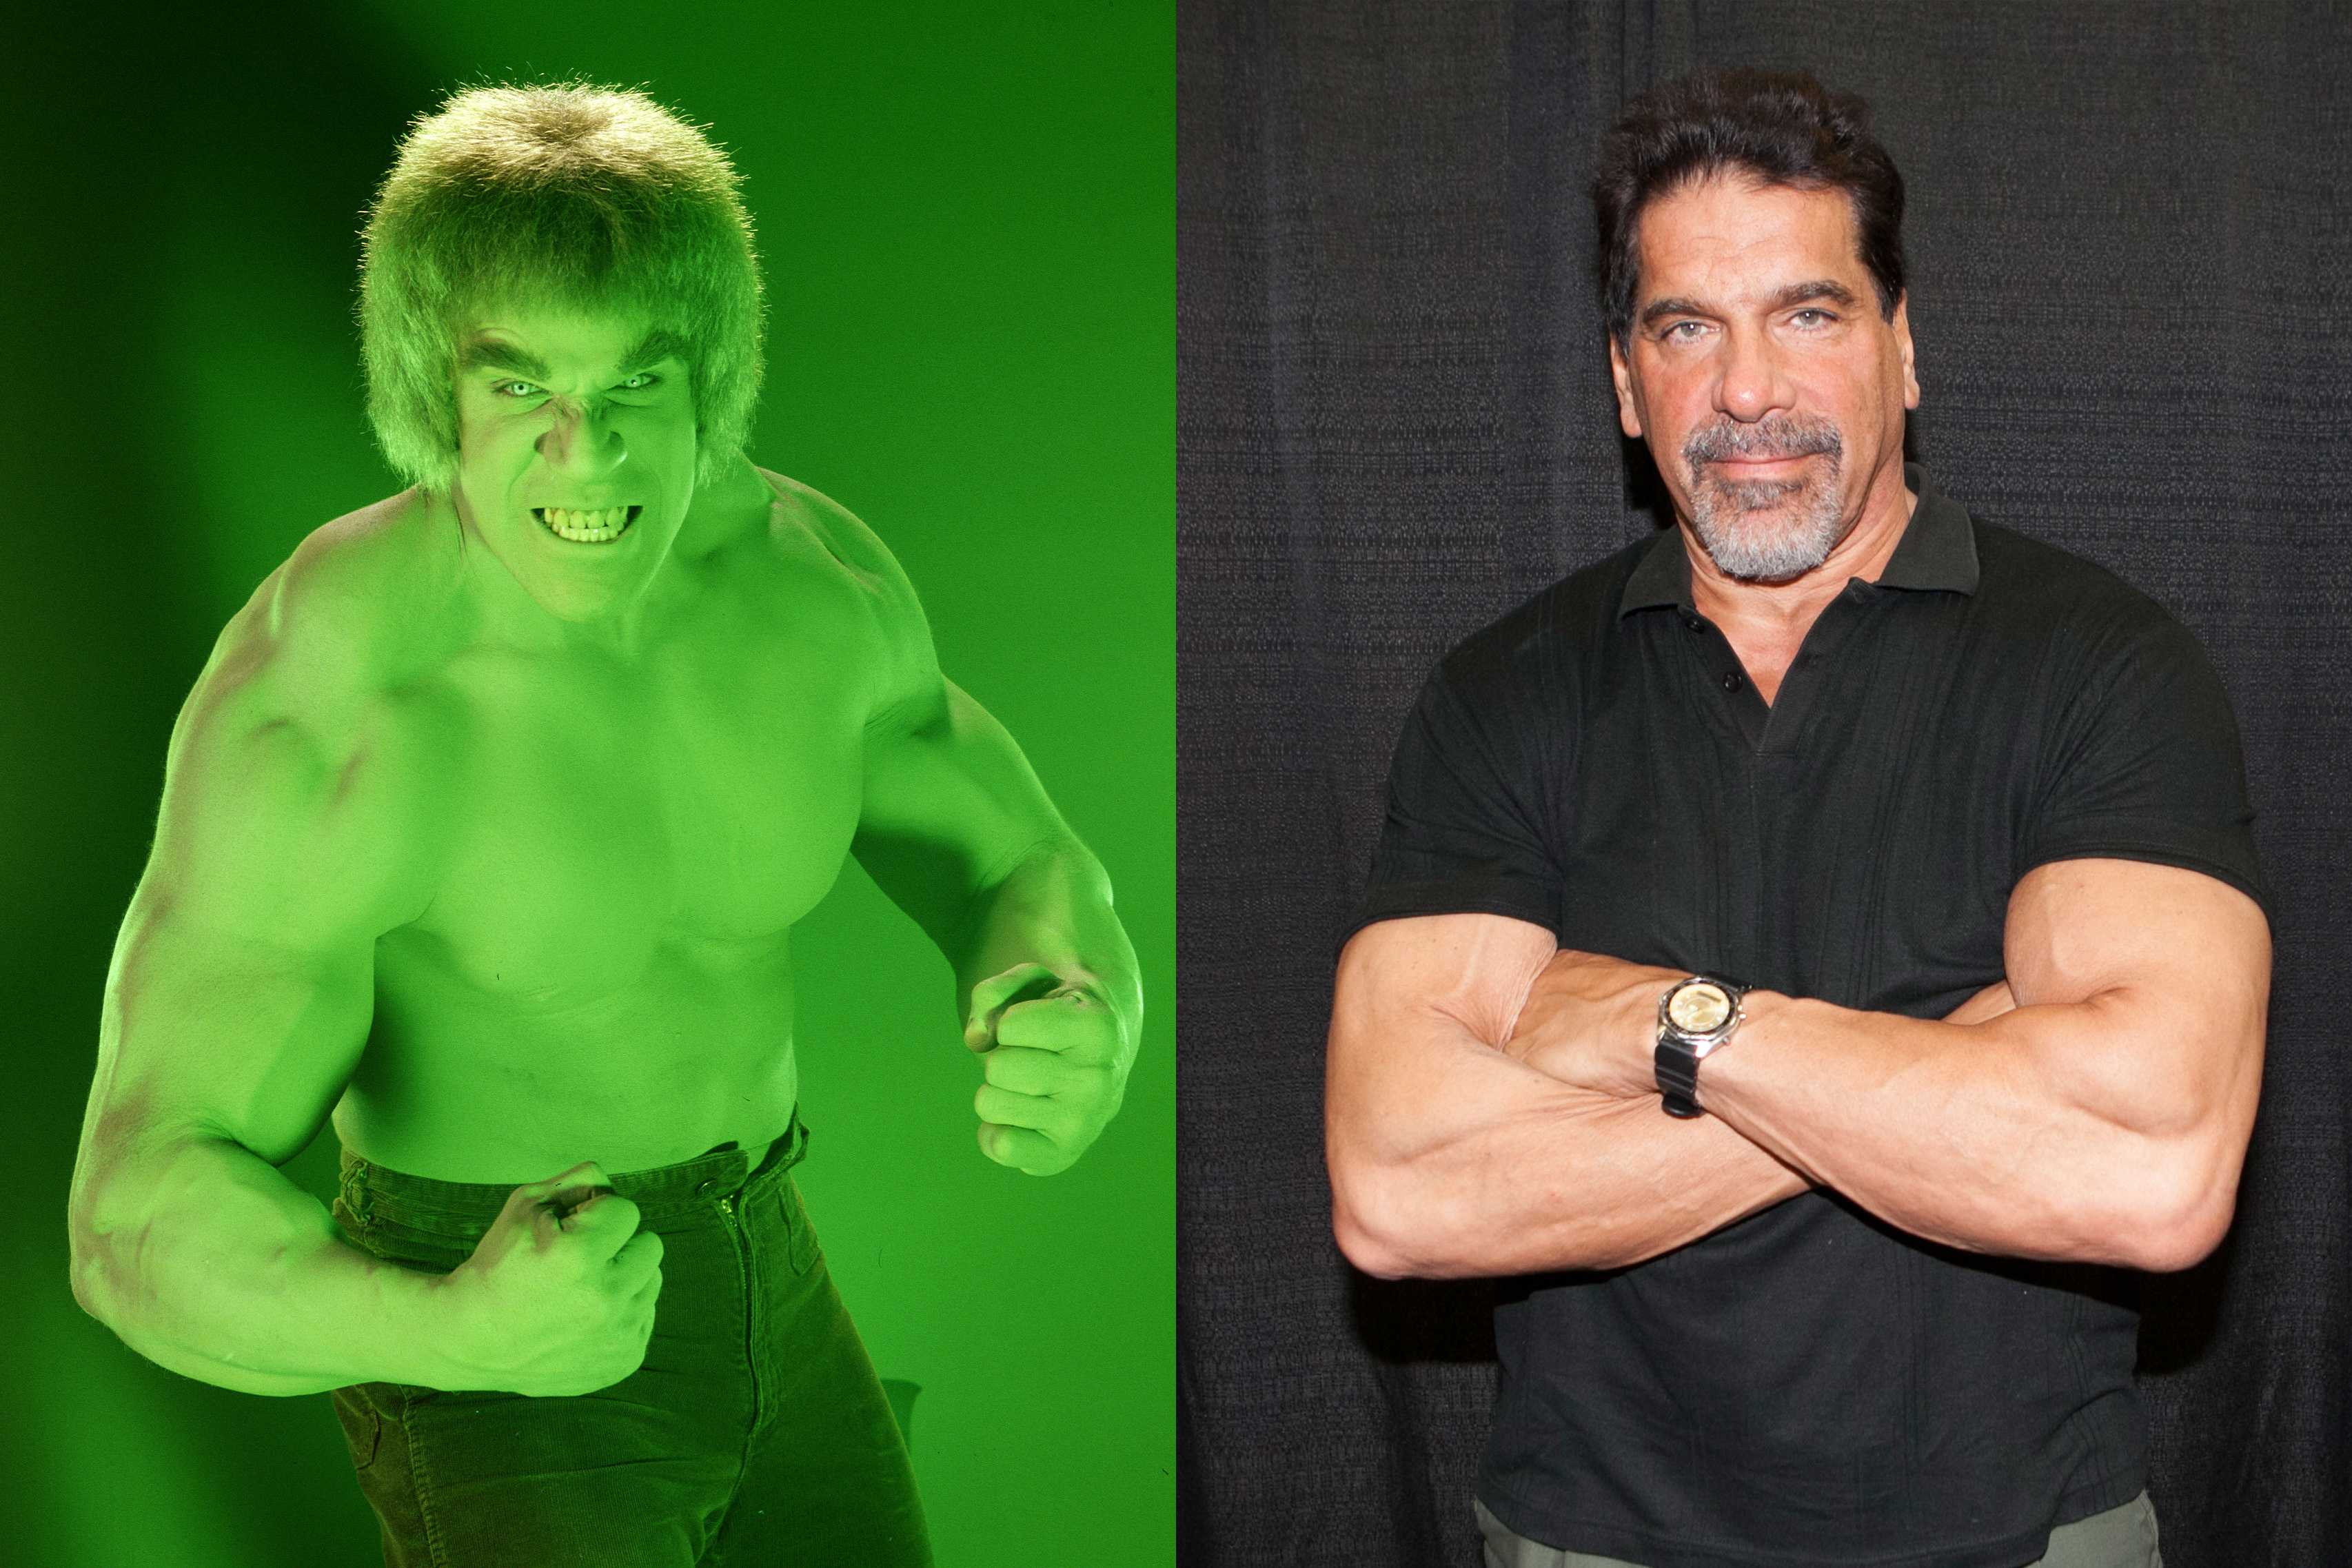 Lou Ferrigno played the scientist-turned-green in The Incredible Hulk from 1977 to 1982, three TV movies and a 1990s revival. The former bodybuilder has since appeared as himself on The King of Queens.